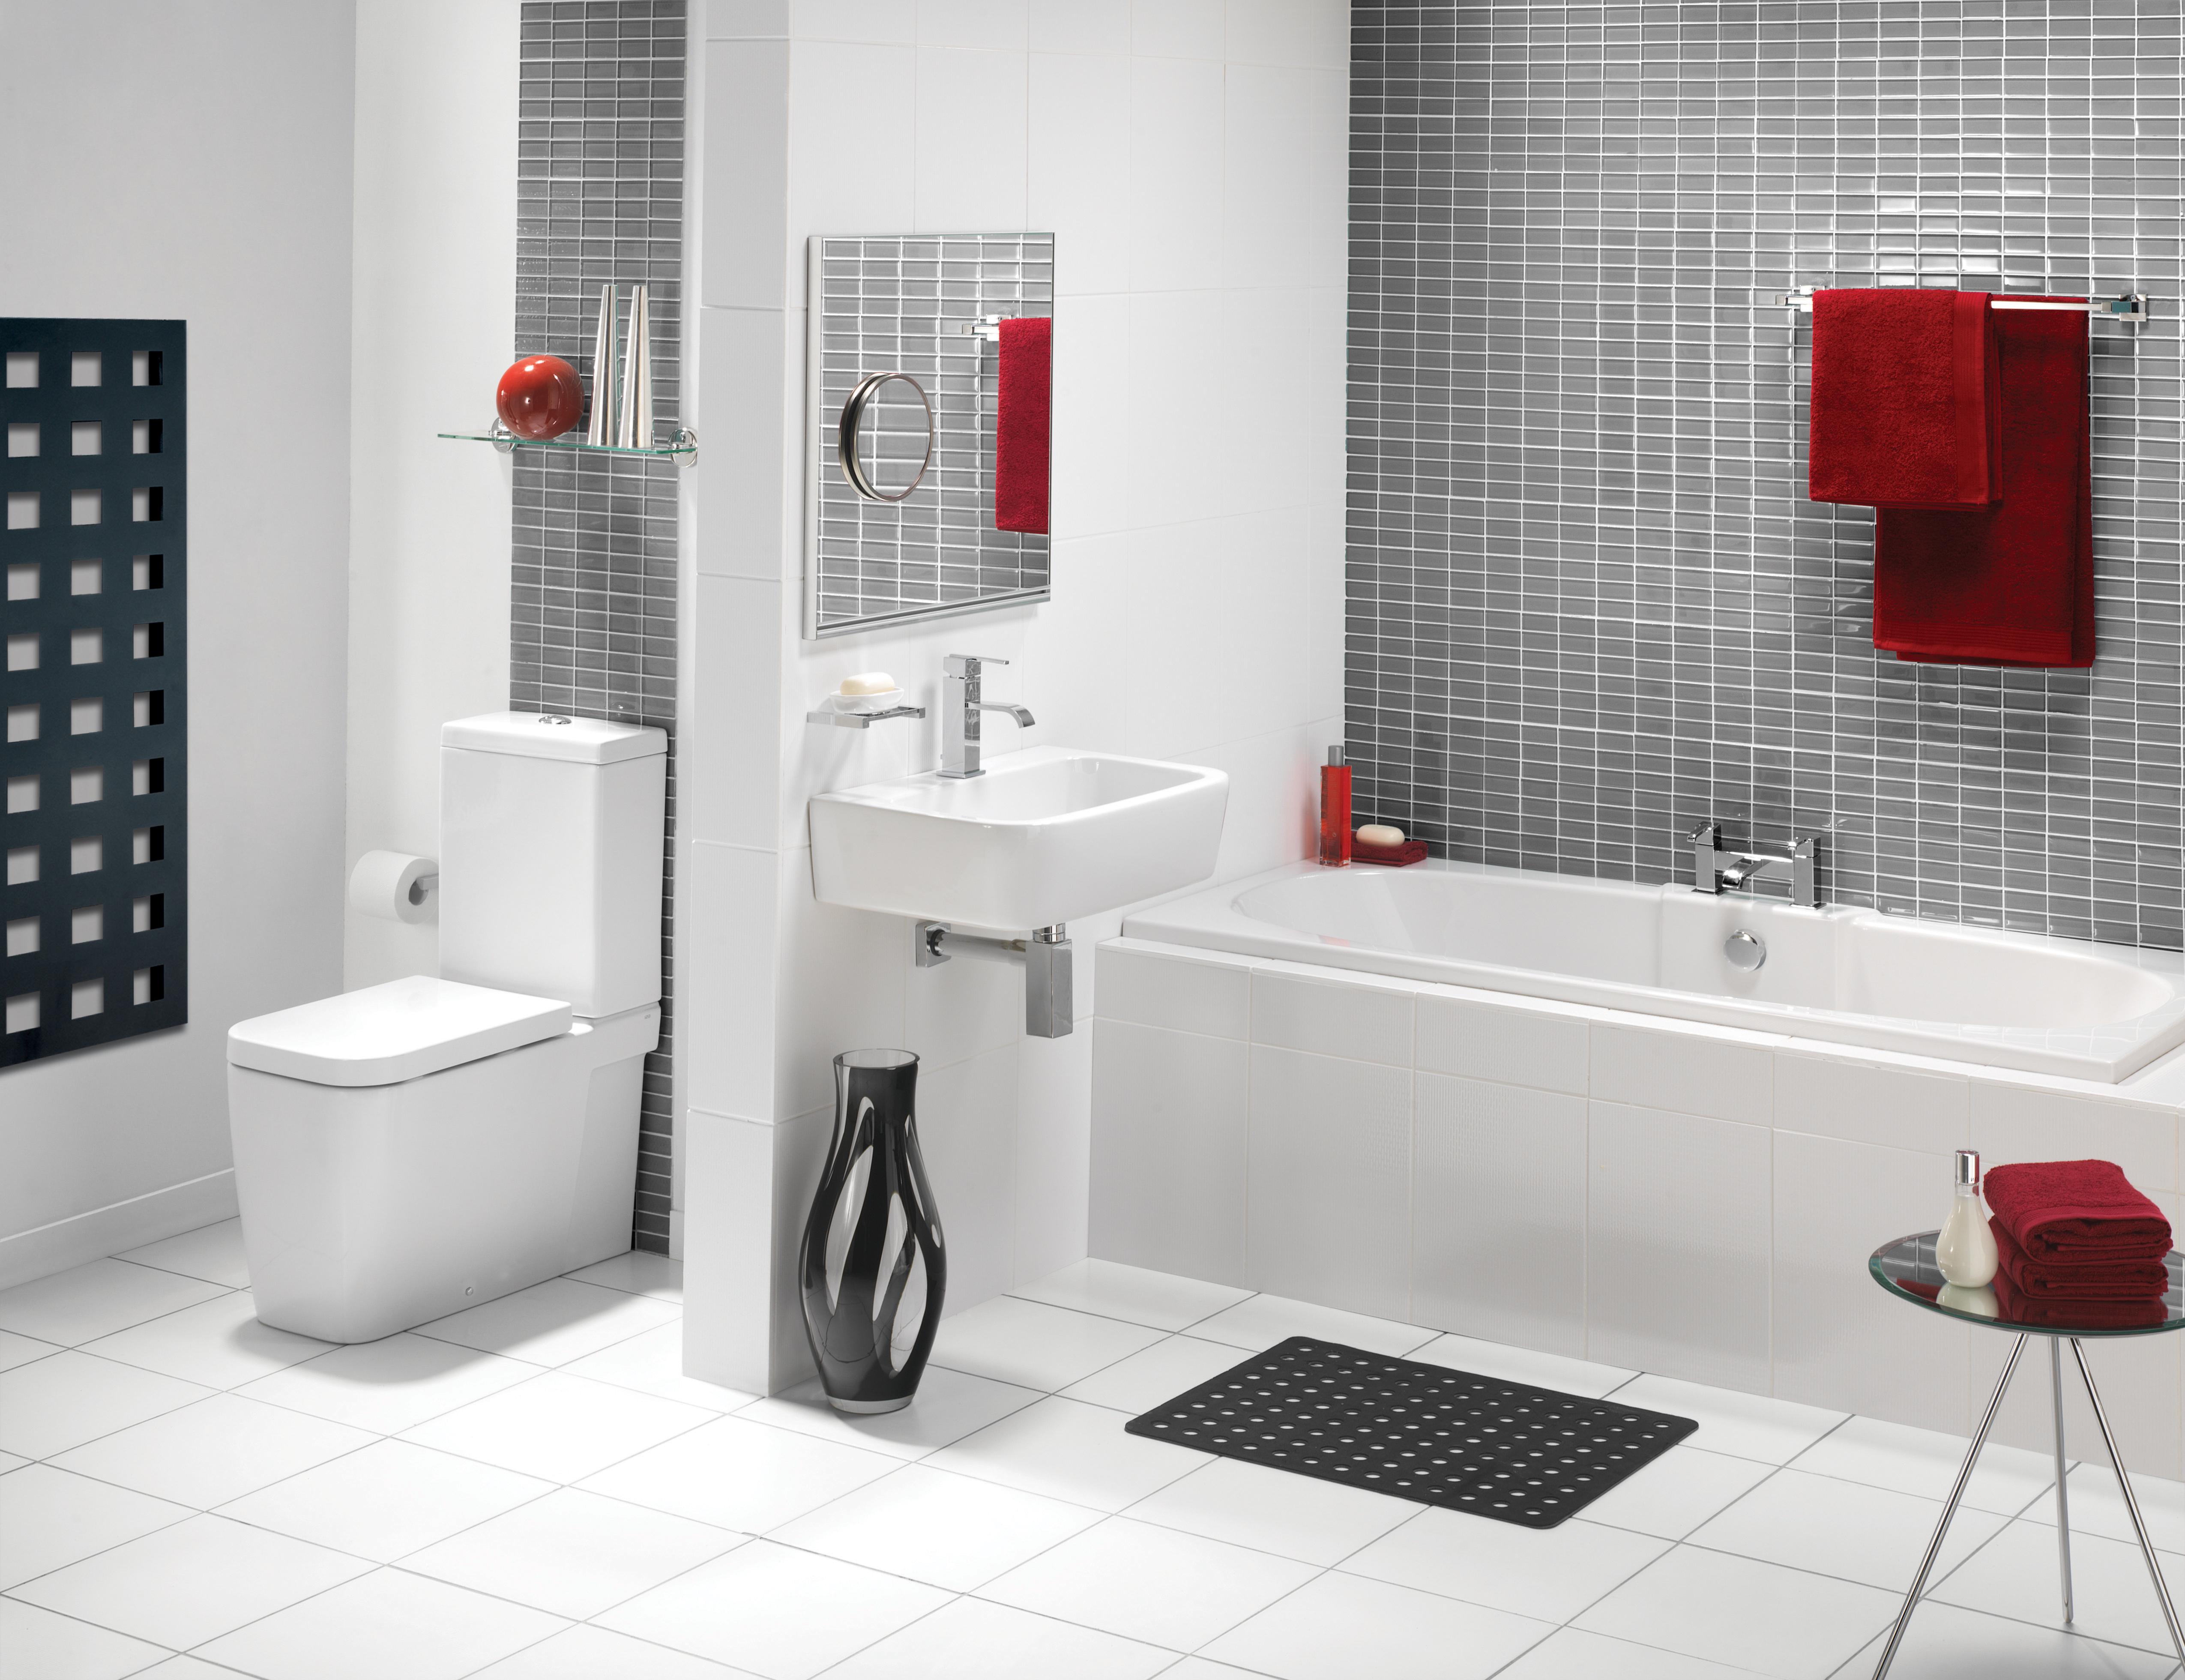 East kilbride bathroom installation glasgow bathroom design installation specialists glasgow Bathroom design and installation chester